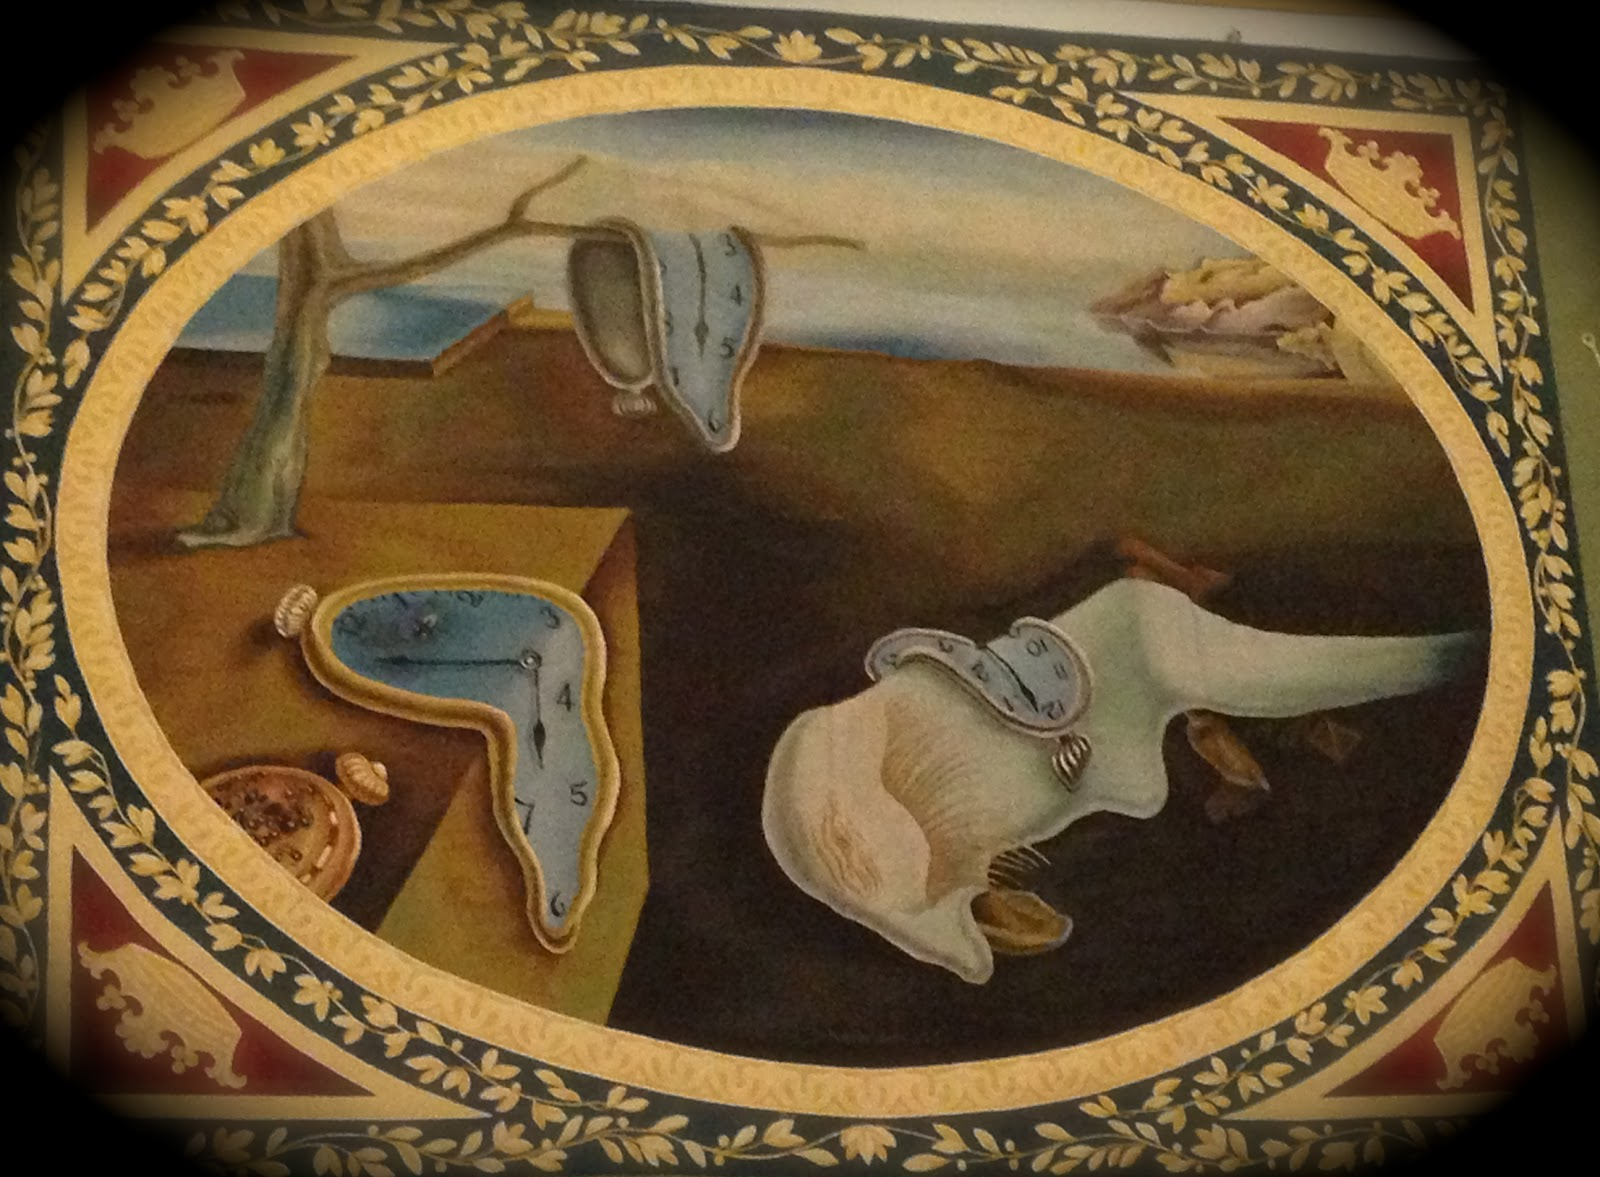 salvador dali persistence of memory essay The persistence of memory - essay peter kassa name of the instructor art analysis paper date submitted an essay on salvador dali's the persistence of memory.